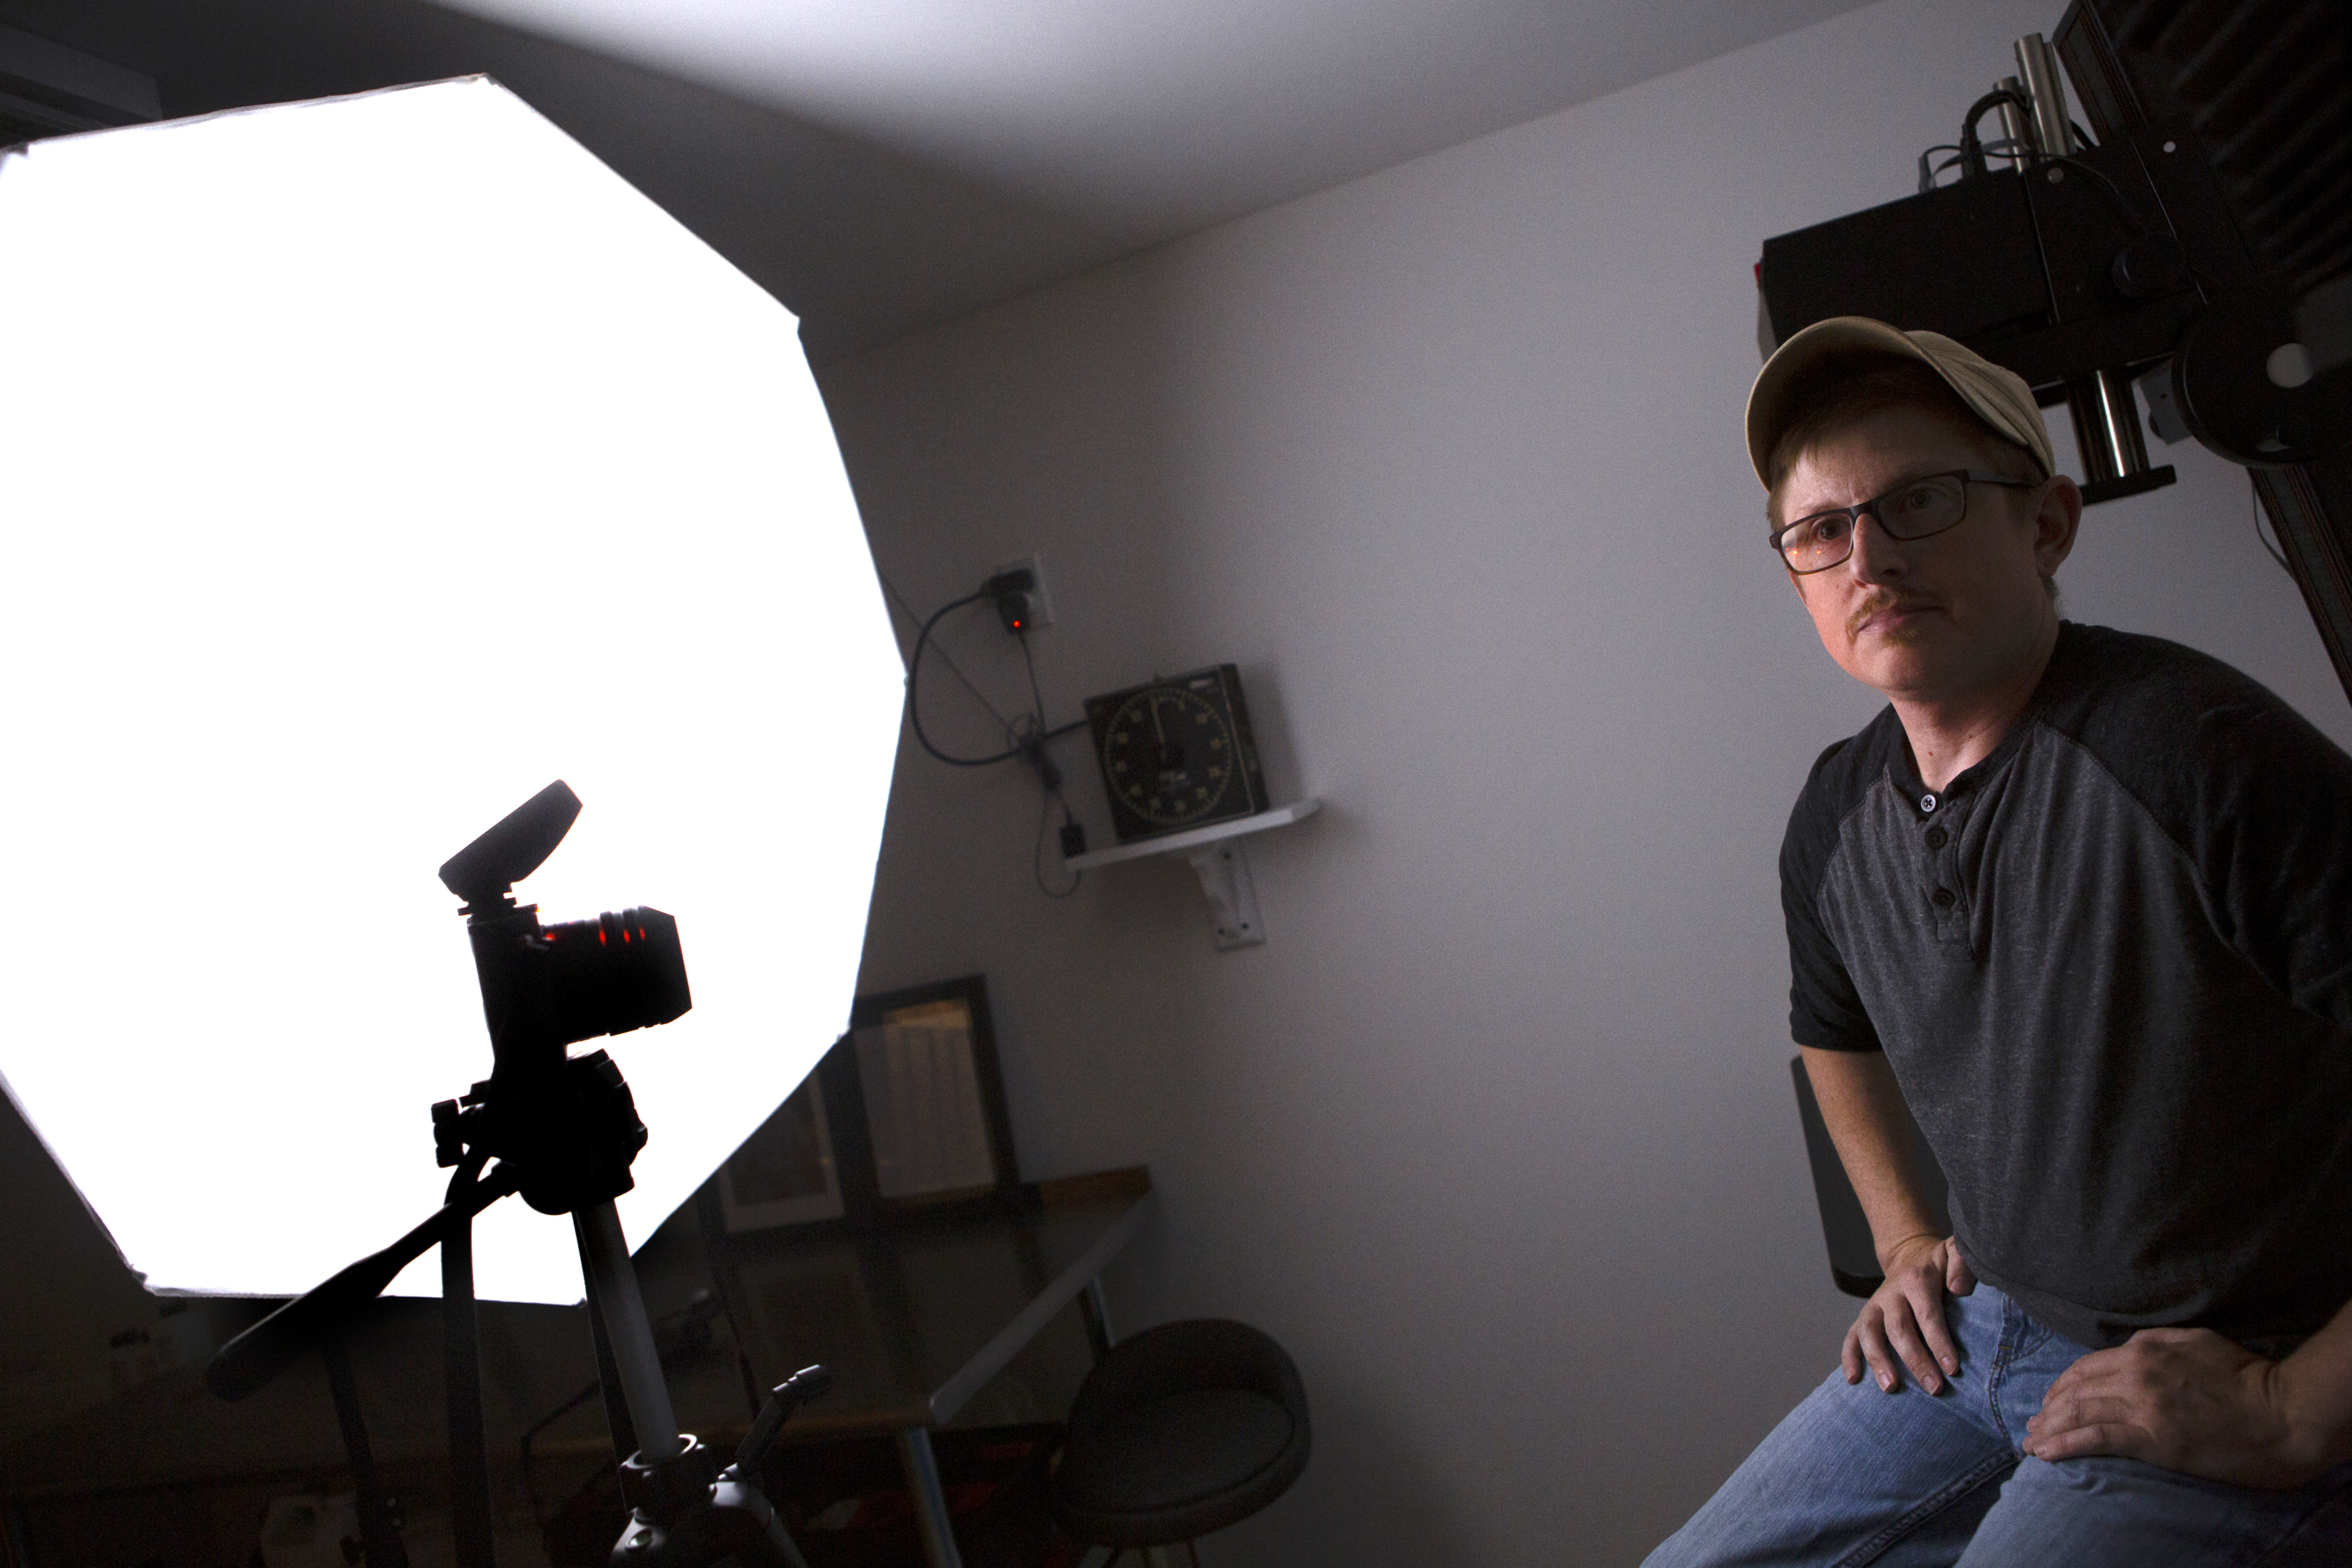 A man wearing a baseball cap, T-shirt and jeans sits in front of a camera on a tripod and an umbrella lamp. In the background is a table, a stool and a timer.